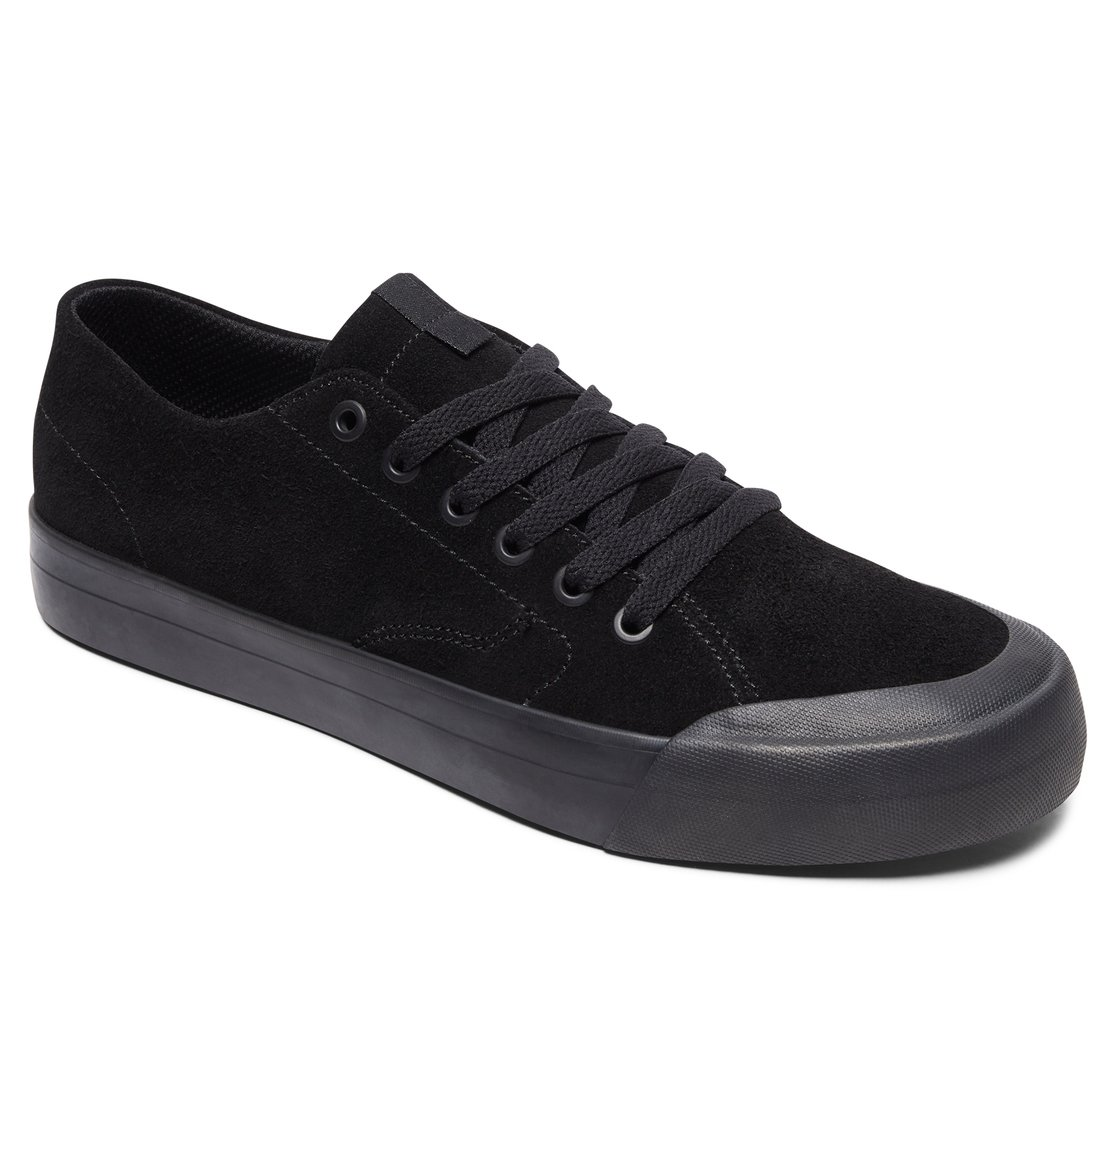 Shoes For Evan Lo Men Skate S Zero j5RqAL43